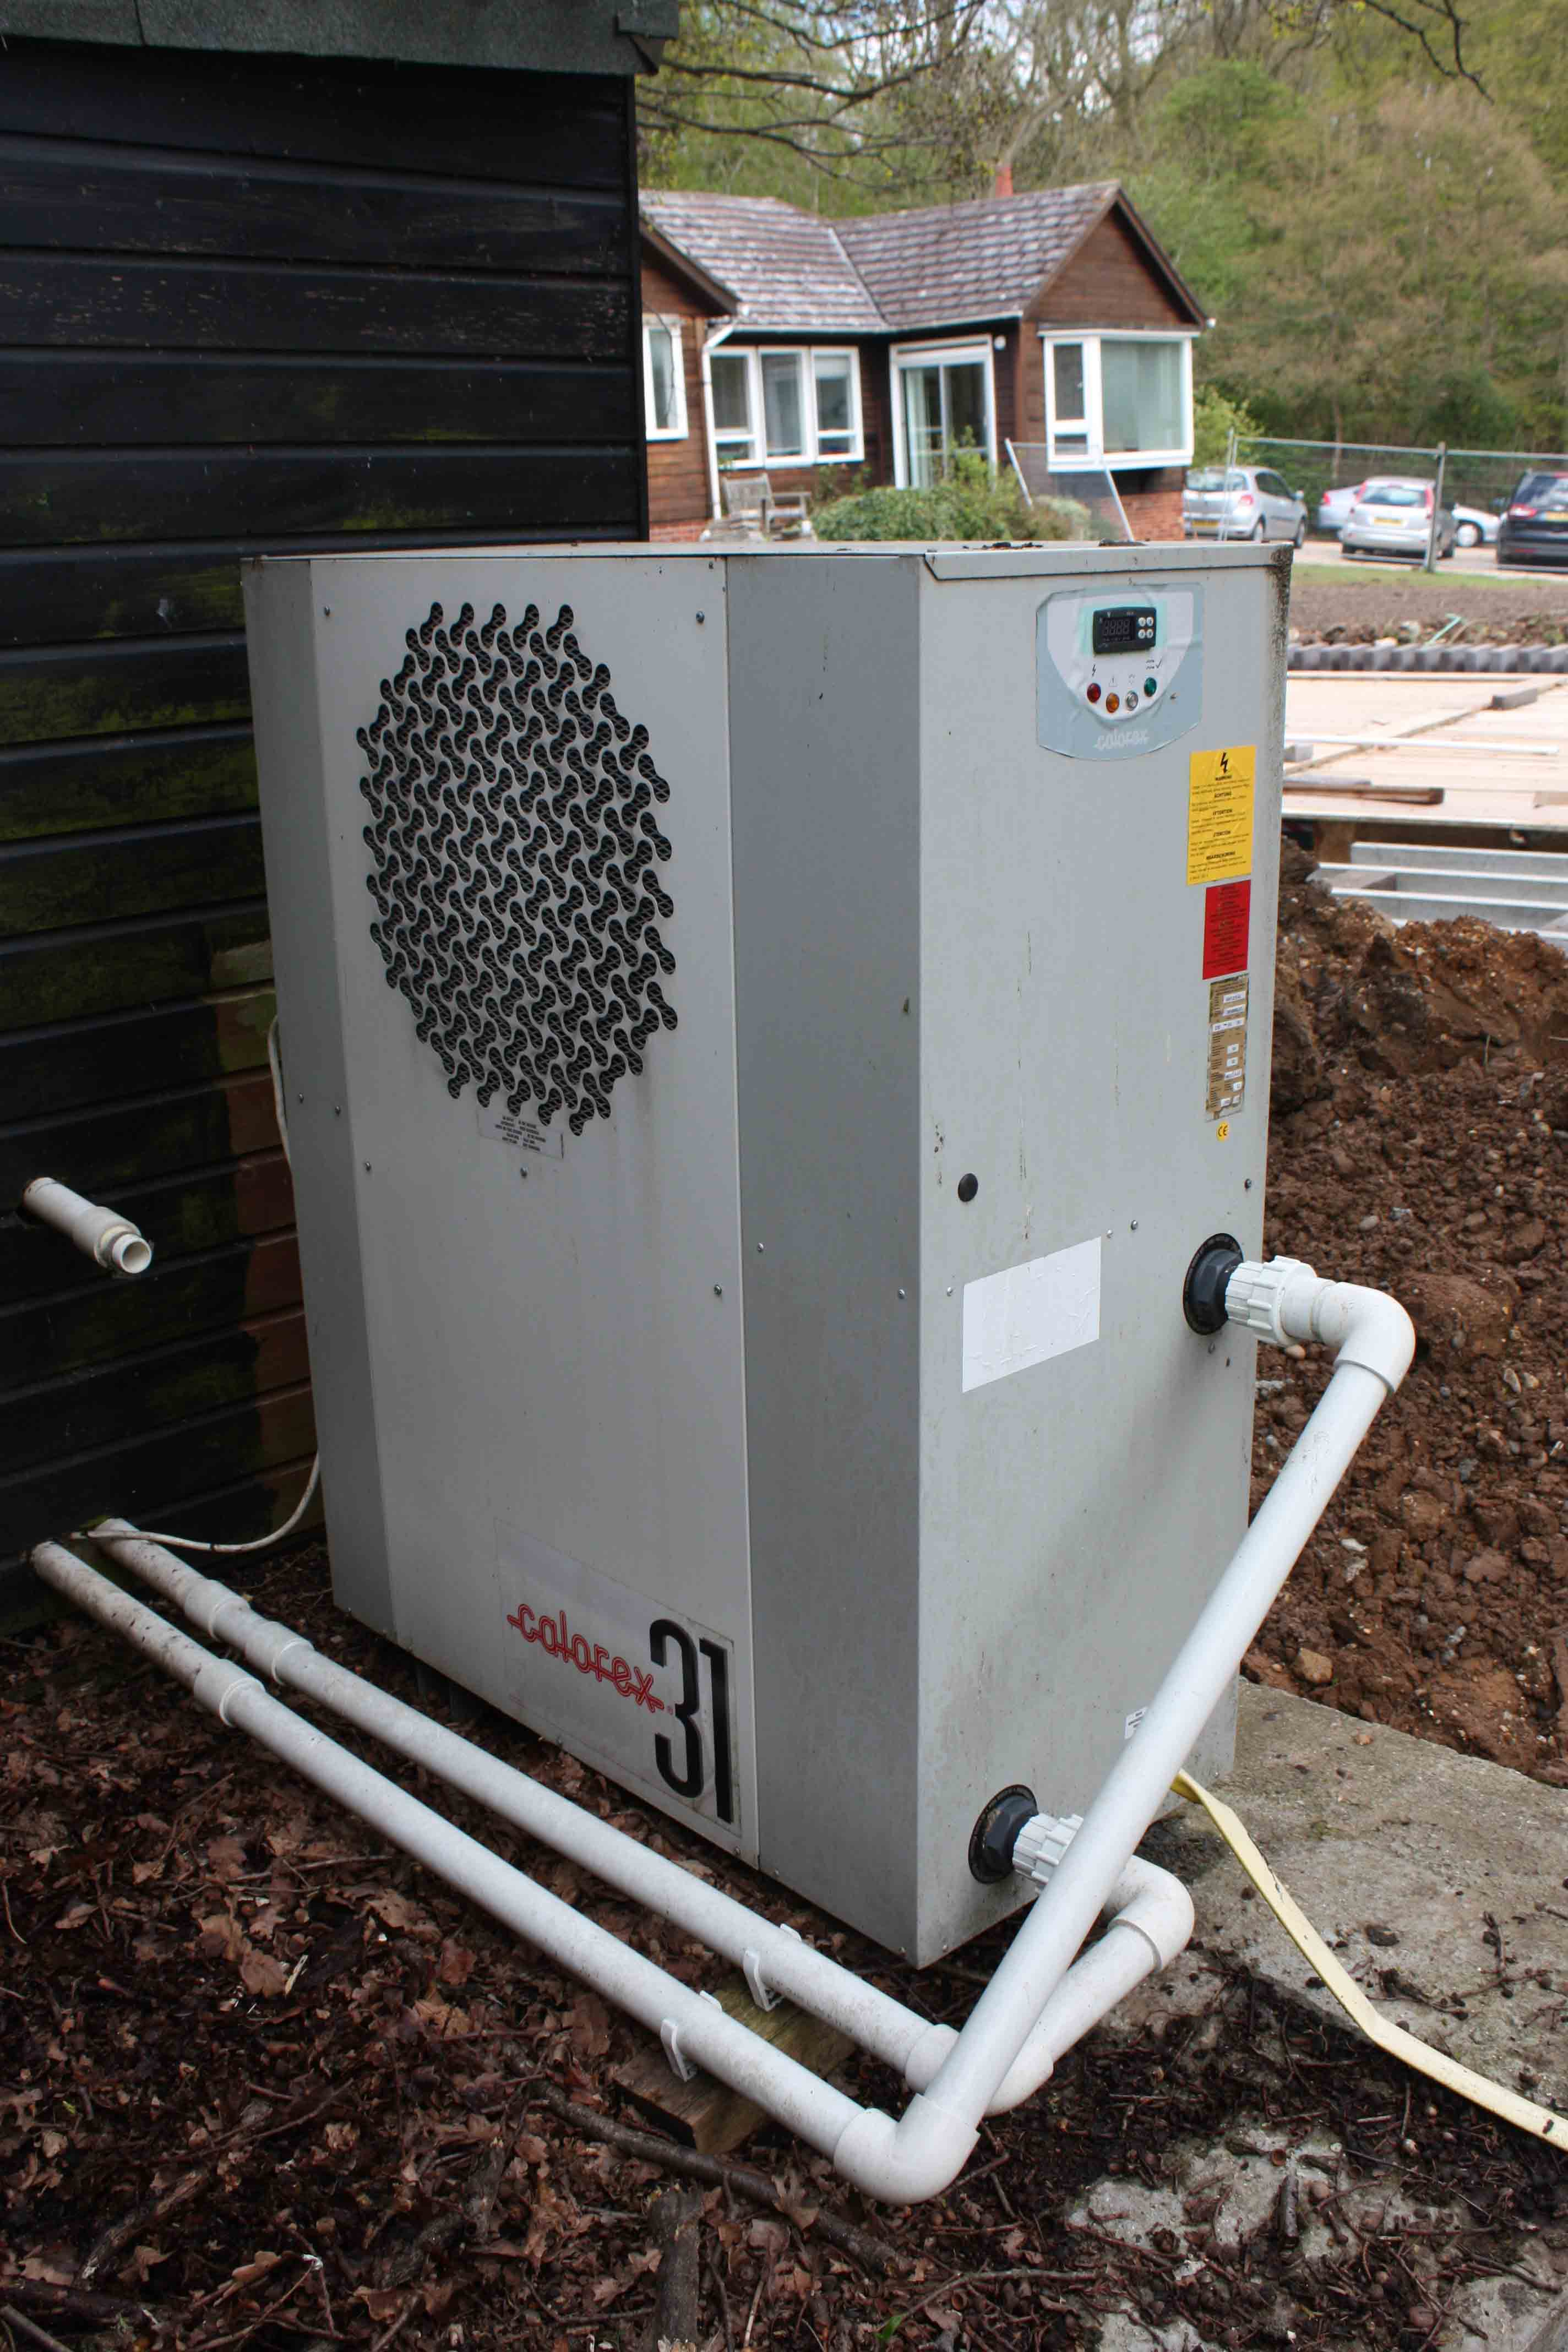 Sold calorex aw1231al swimming pool heat pump used - Heated swimming pool running costs ...